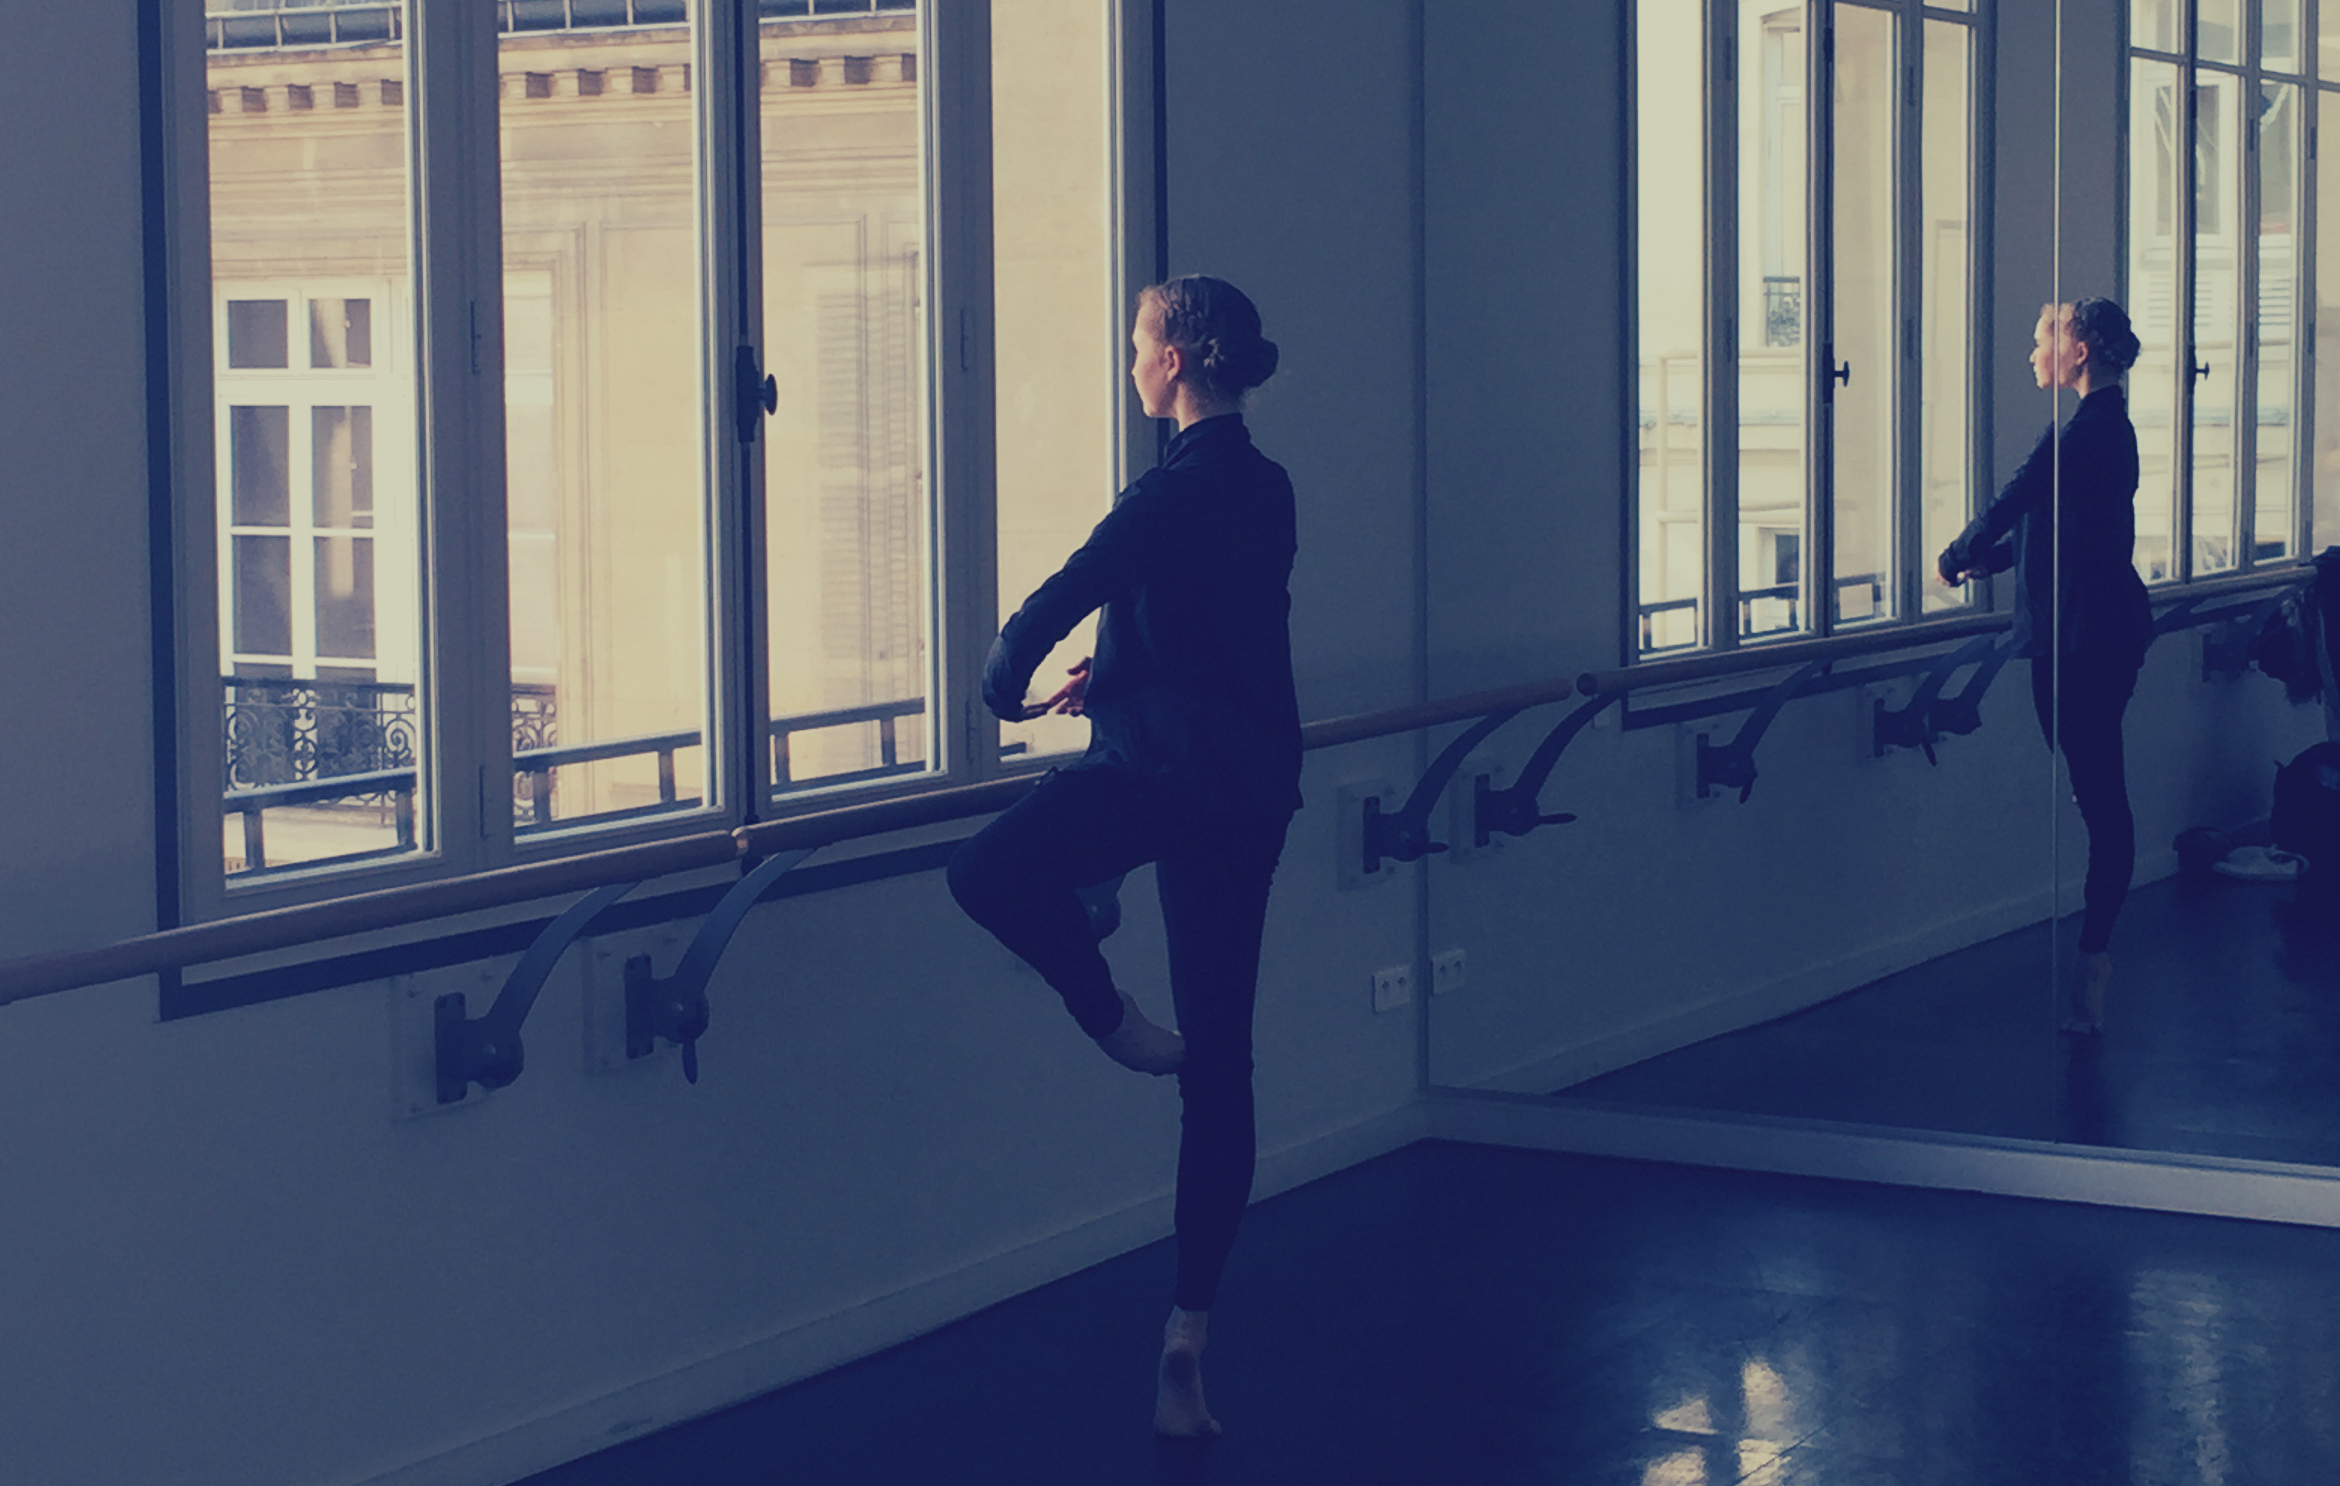 Ready for the day: Bianca warming up in the studio in preparation for filming